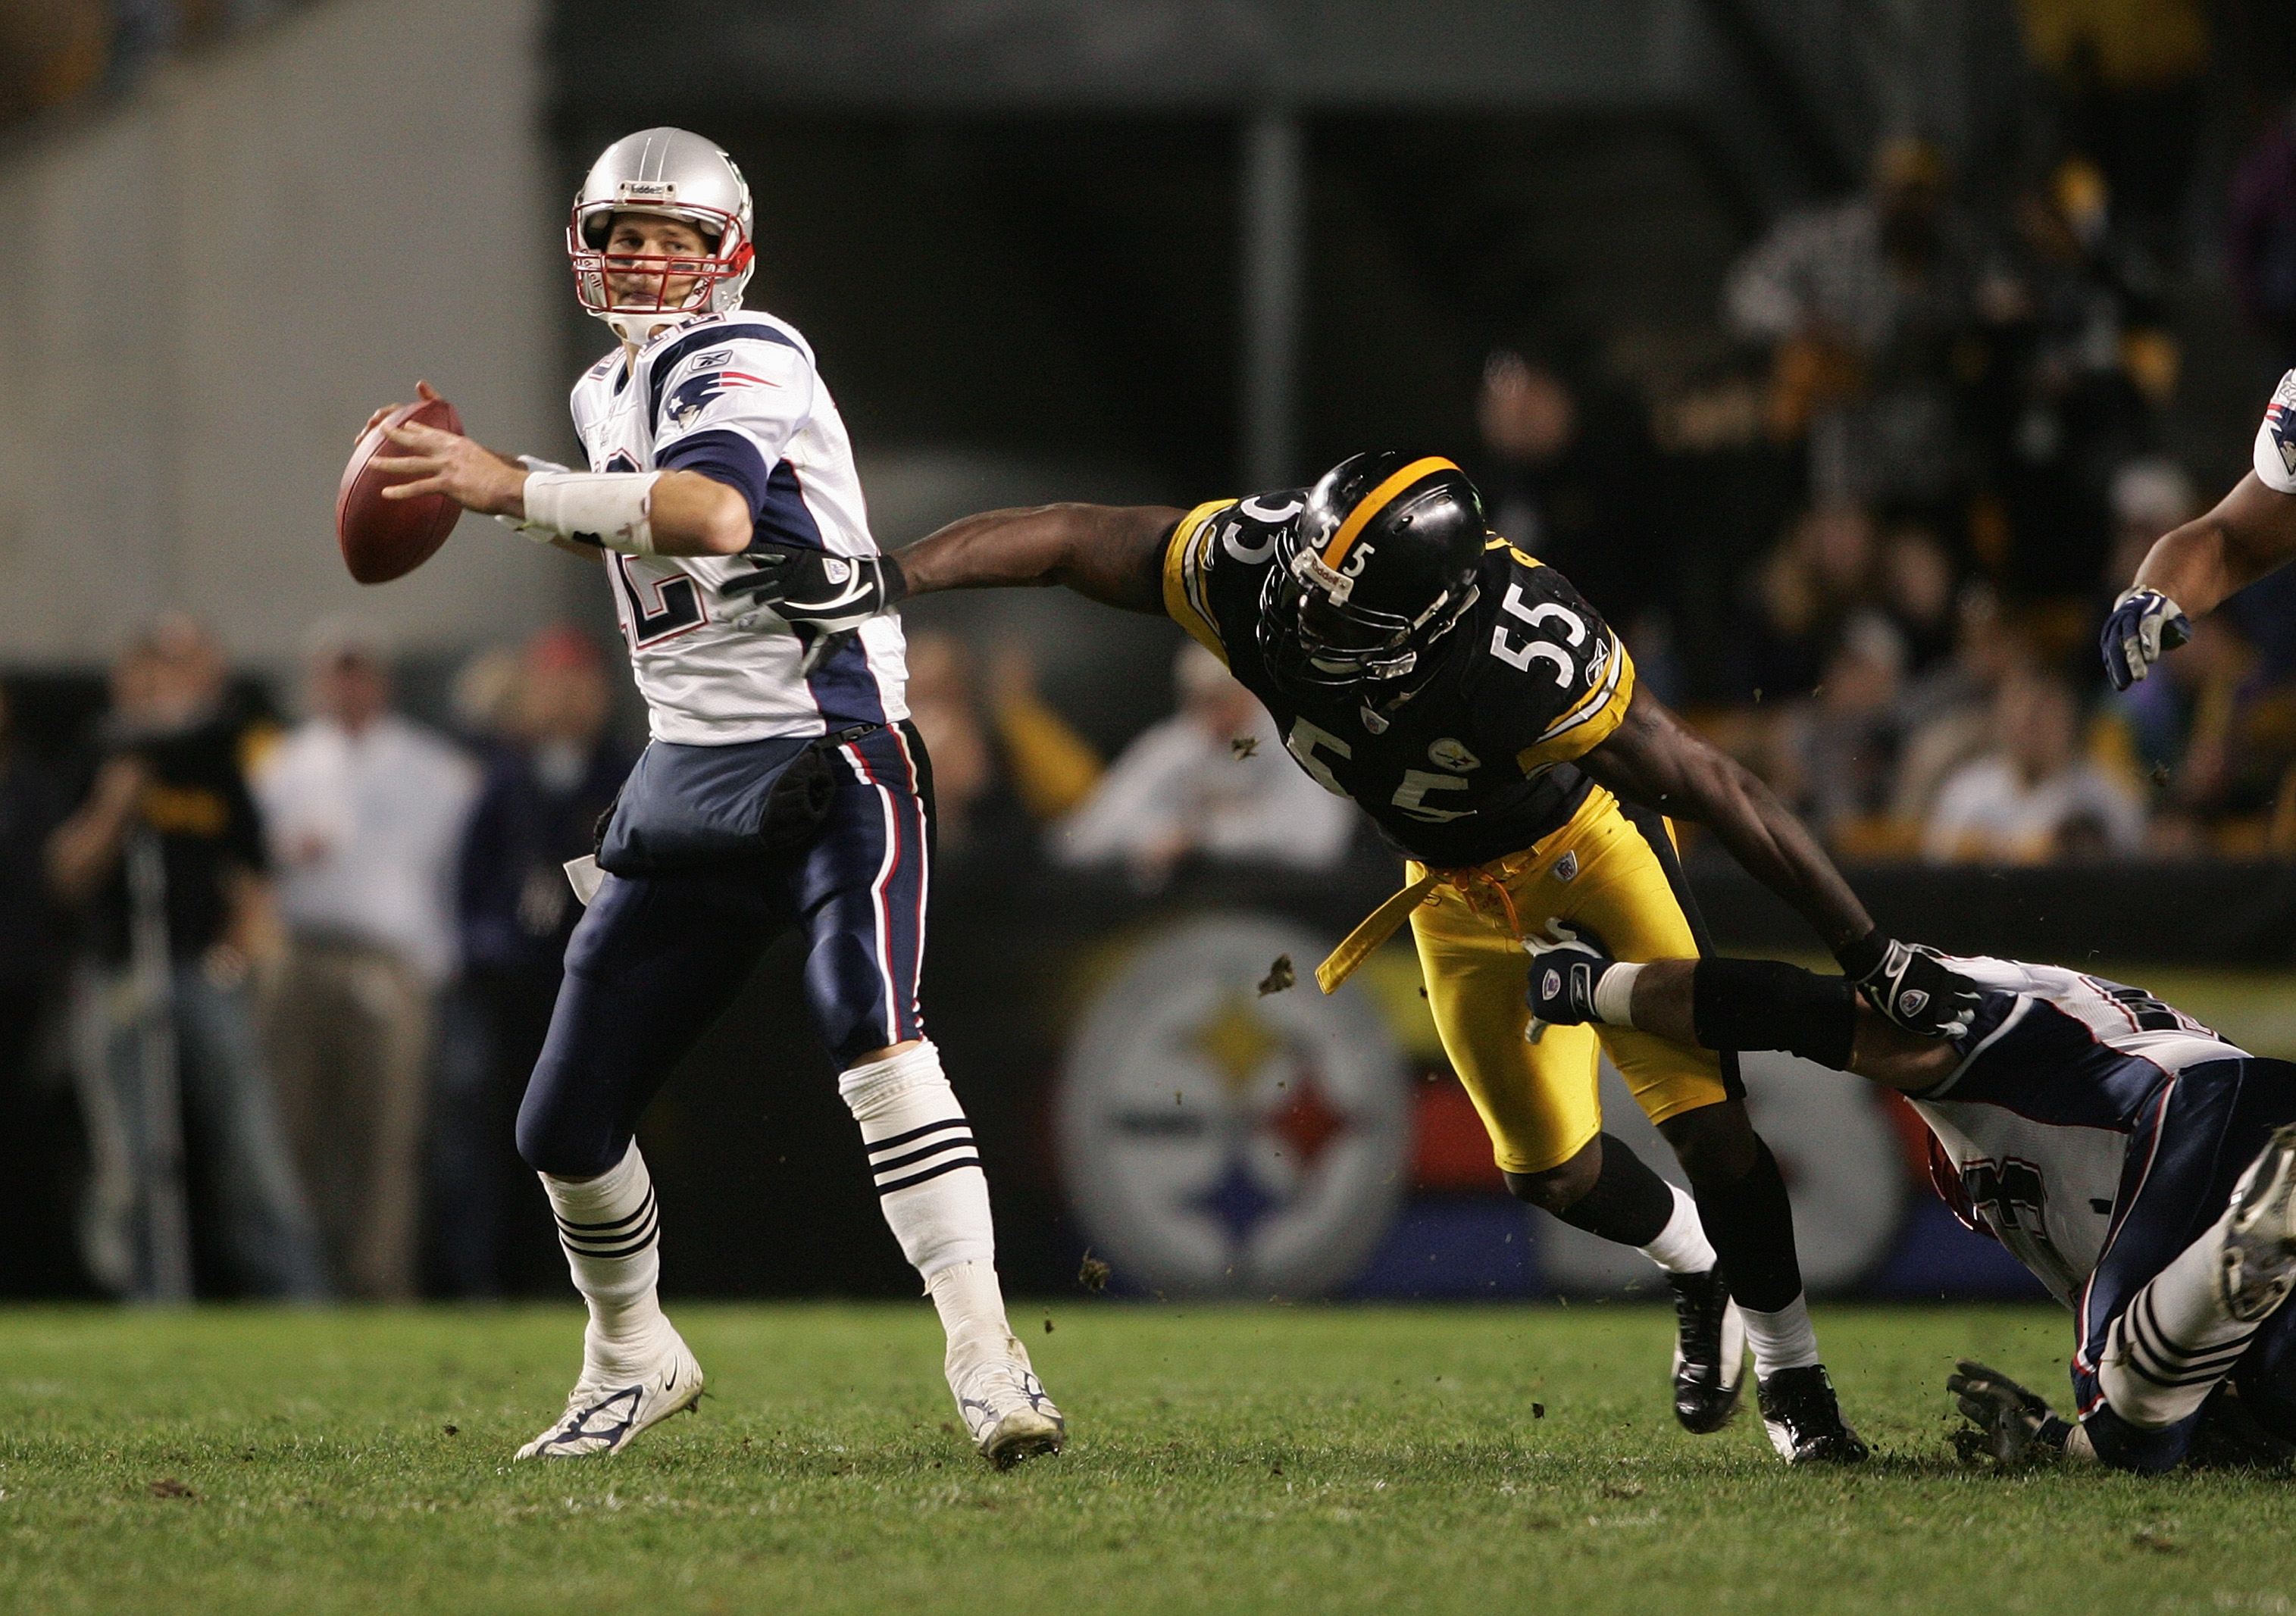 PITTSBURGH - OCTOBER 31:  Quarterback Tom Brady #12 of the New England Patriots attempts to pass the ball before being sacked by outside linebacker Joey Porter #55 of the Pittsburgh Steelers during the game at Heinz Field on October 31, 2004 in Pittsburgh